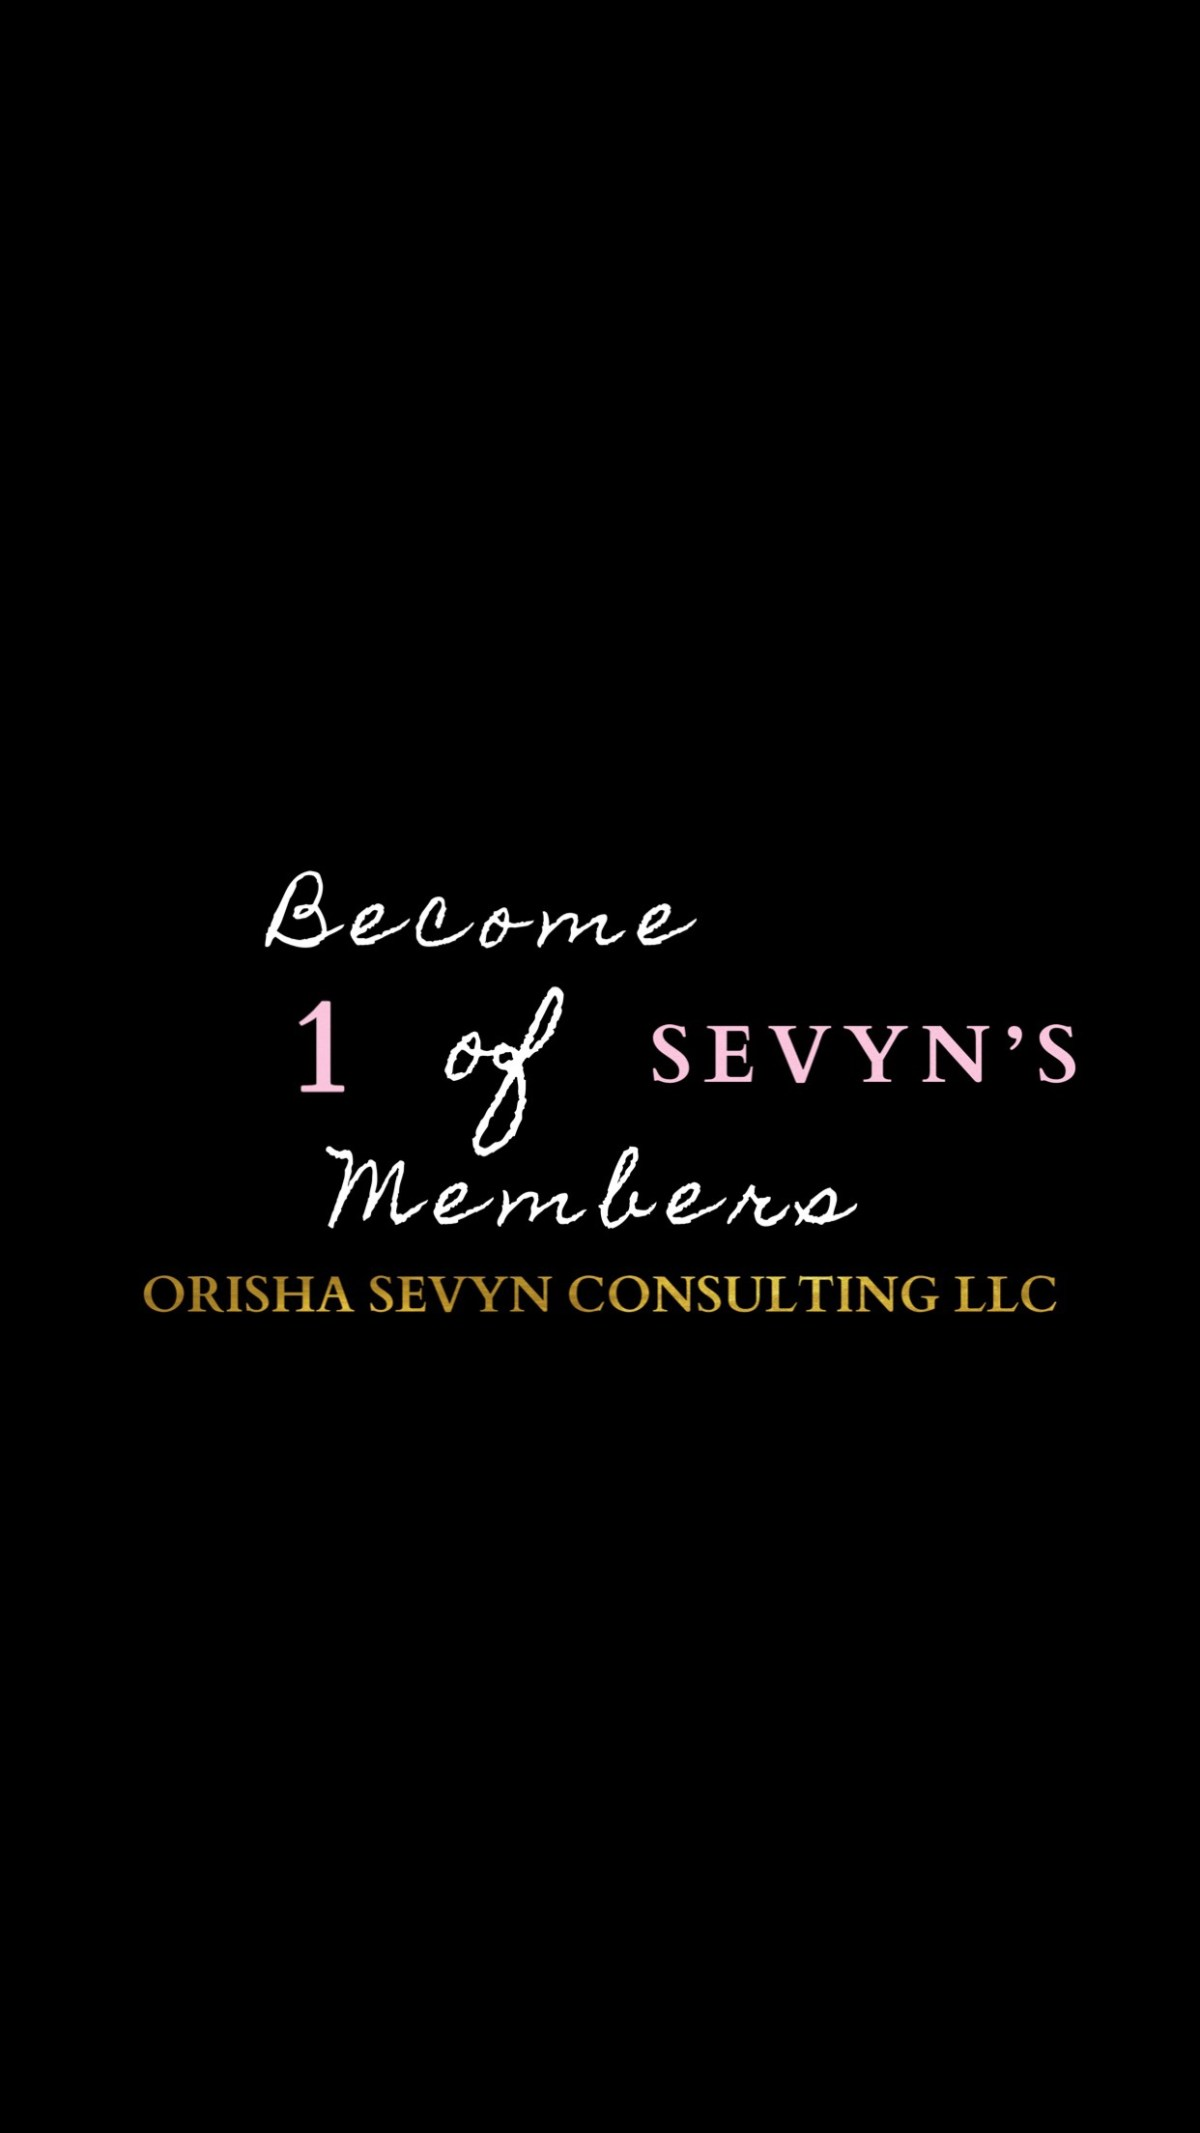 Now Accepting Men for 1 of Sevyn's Membership